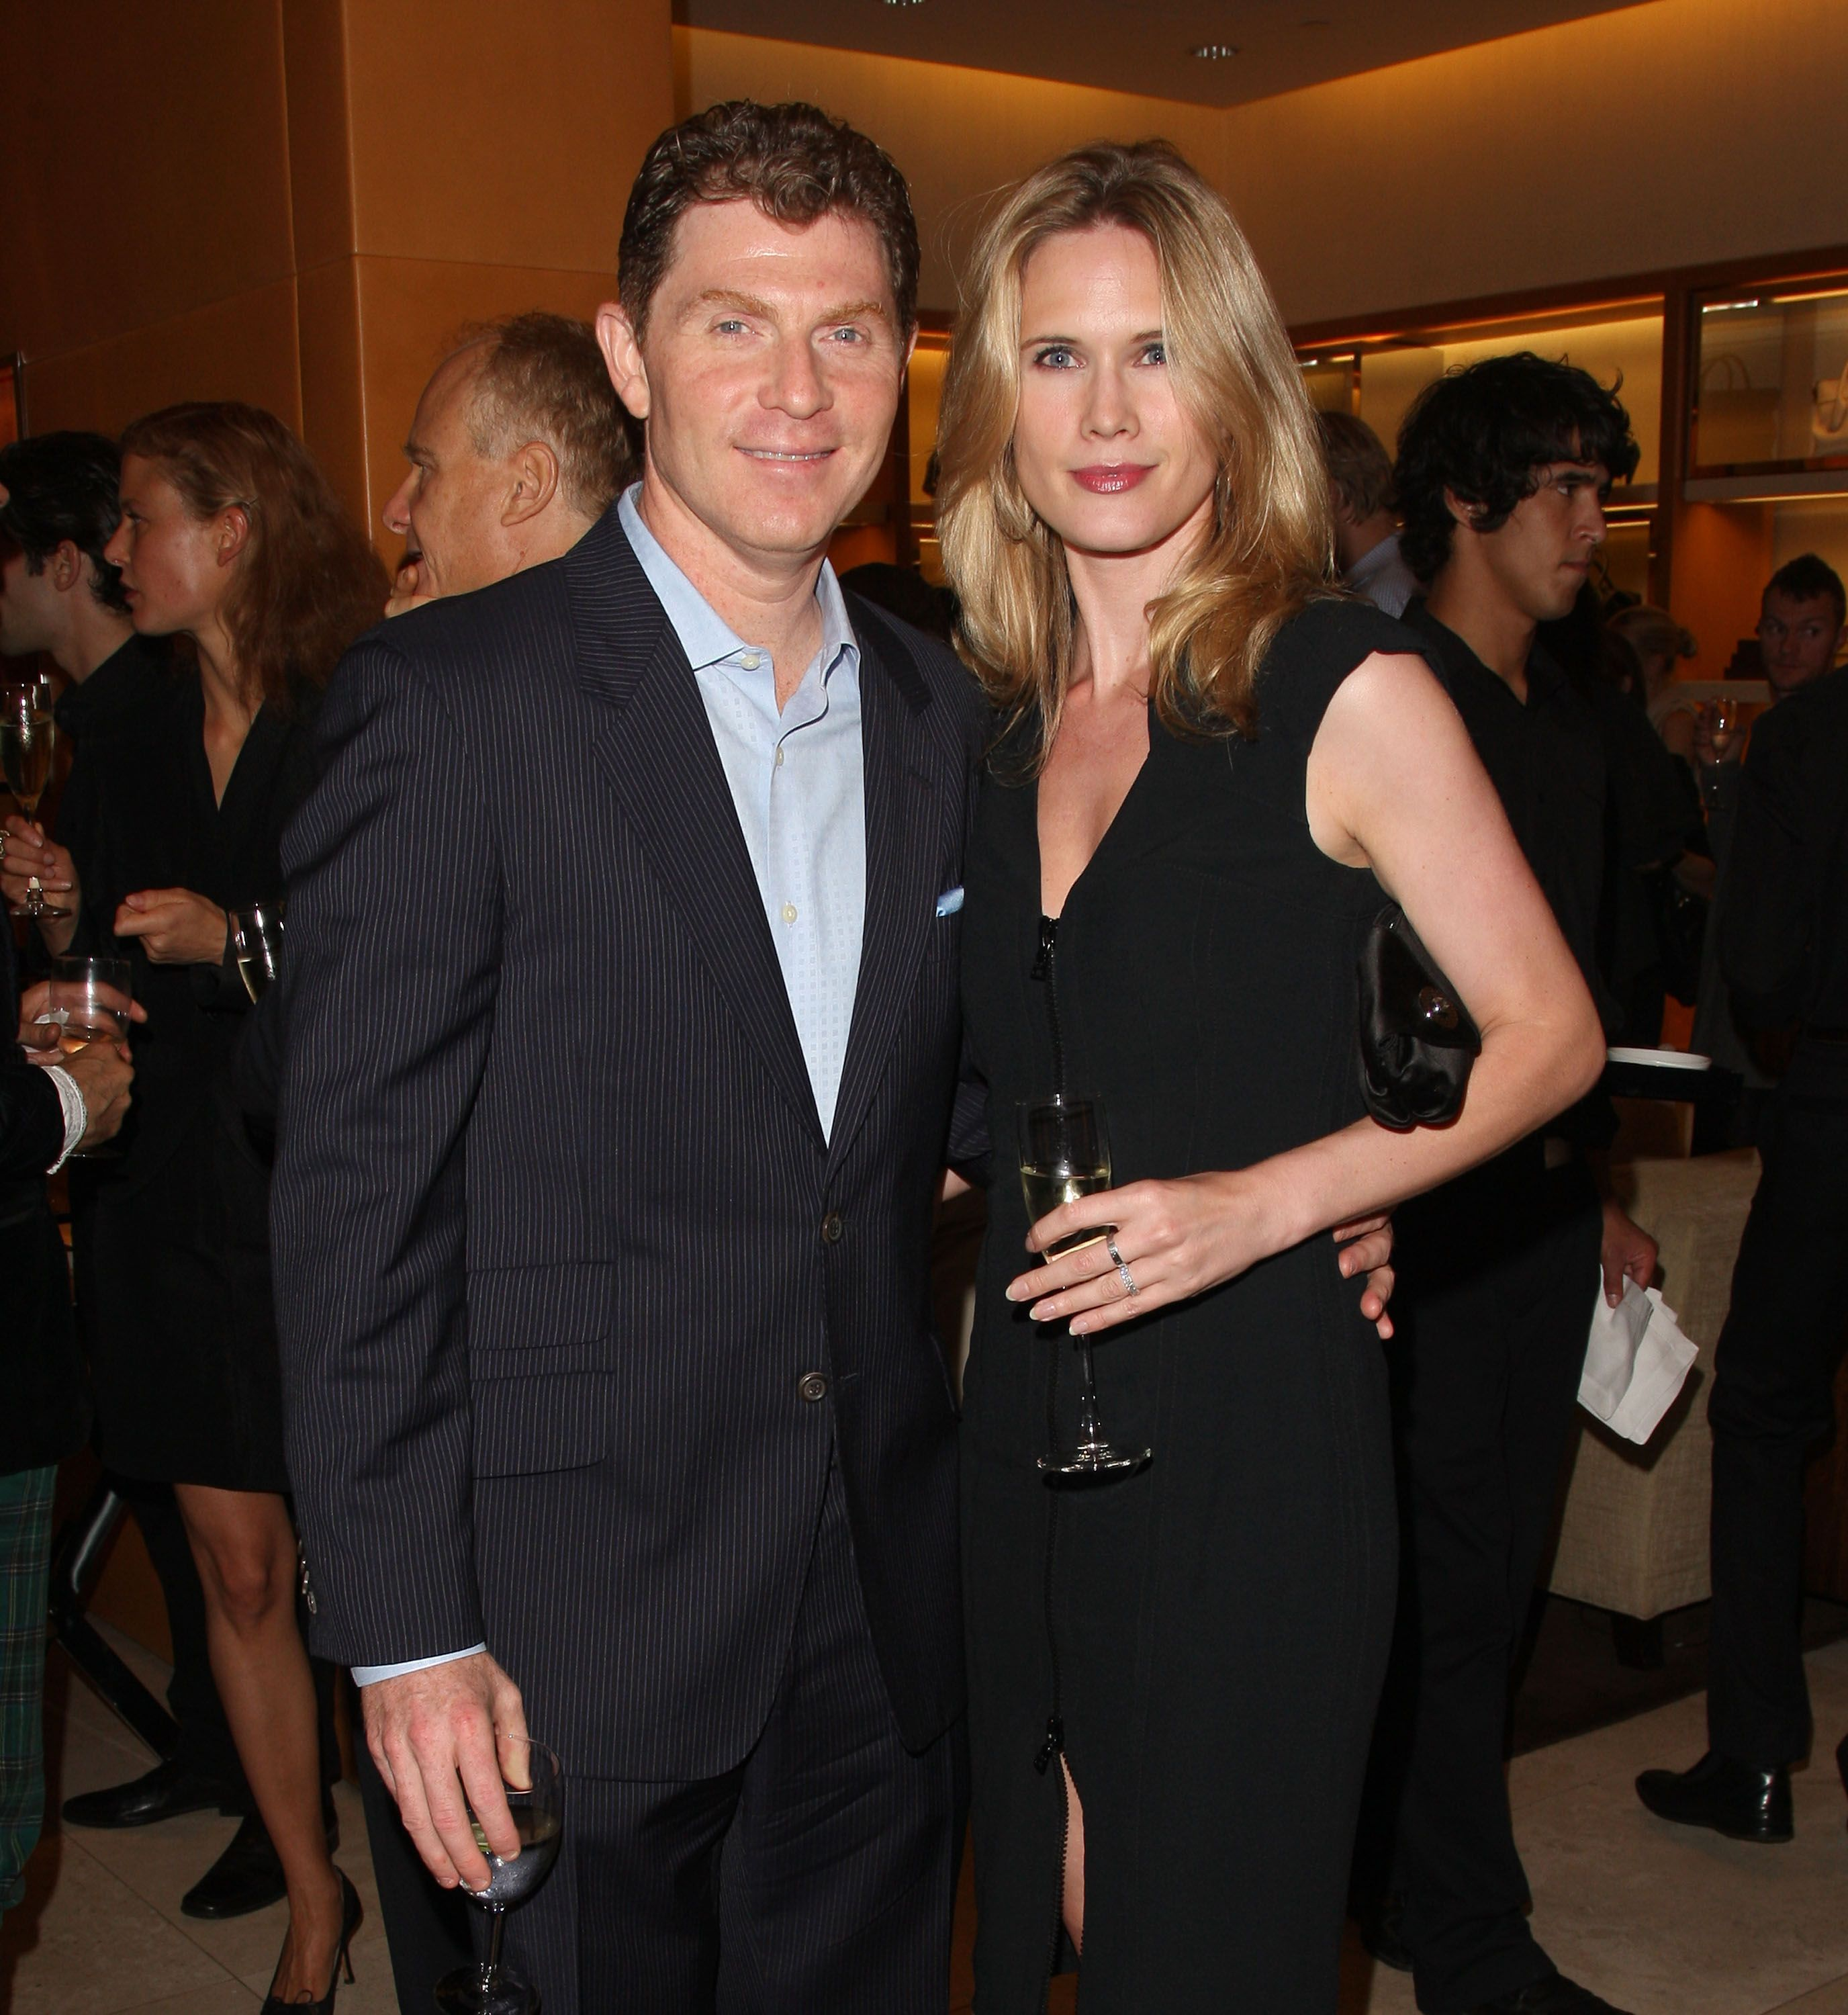 Bobby Flay Girlfriend, Wives, and Divorce - Who is Bobby